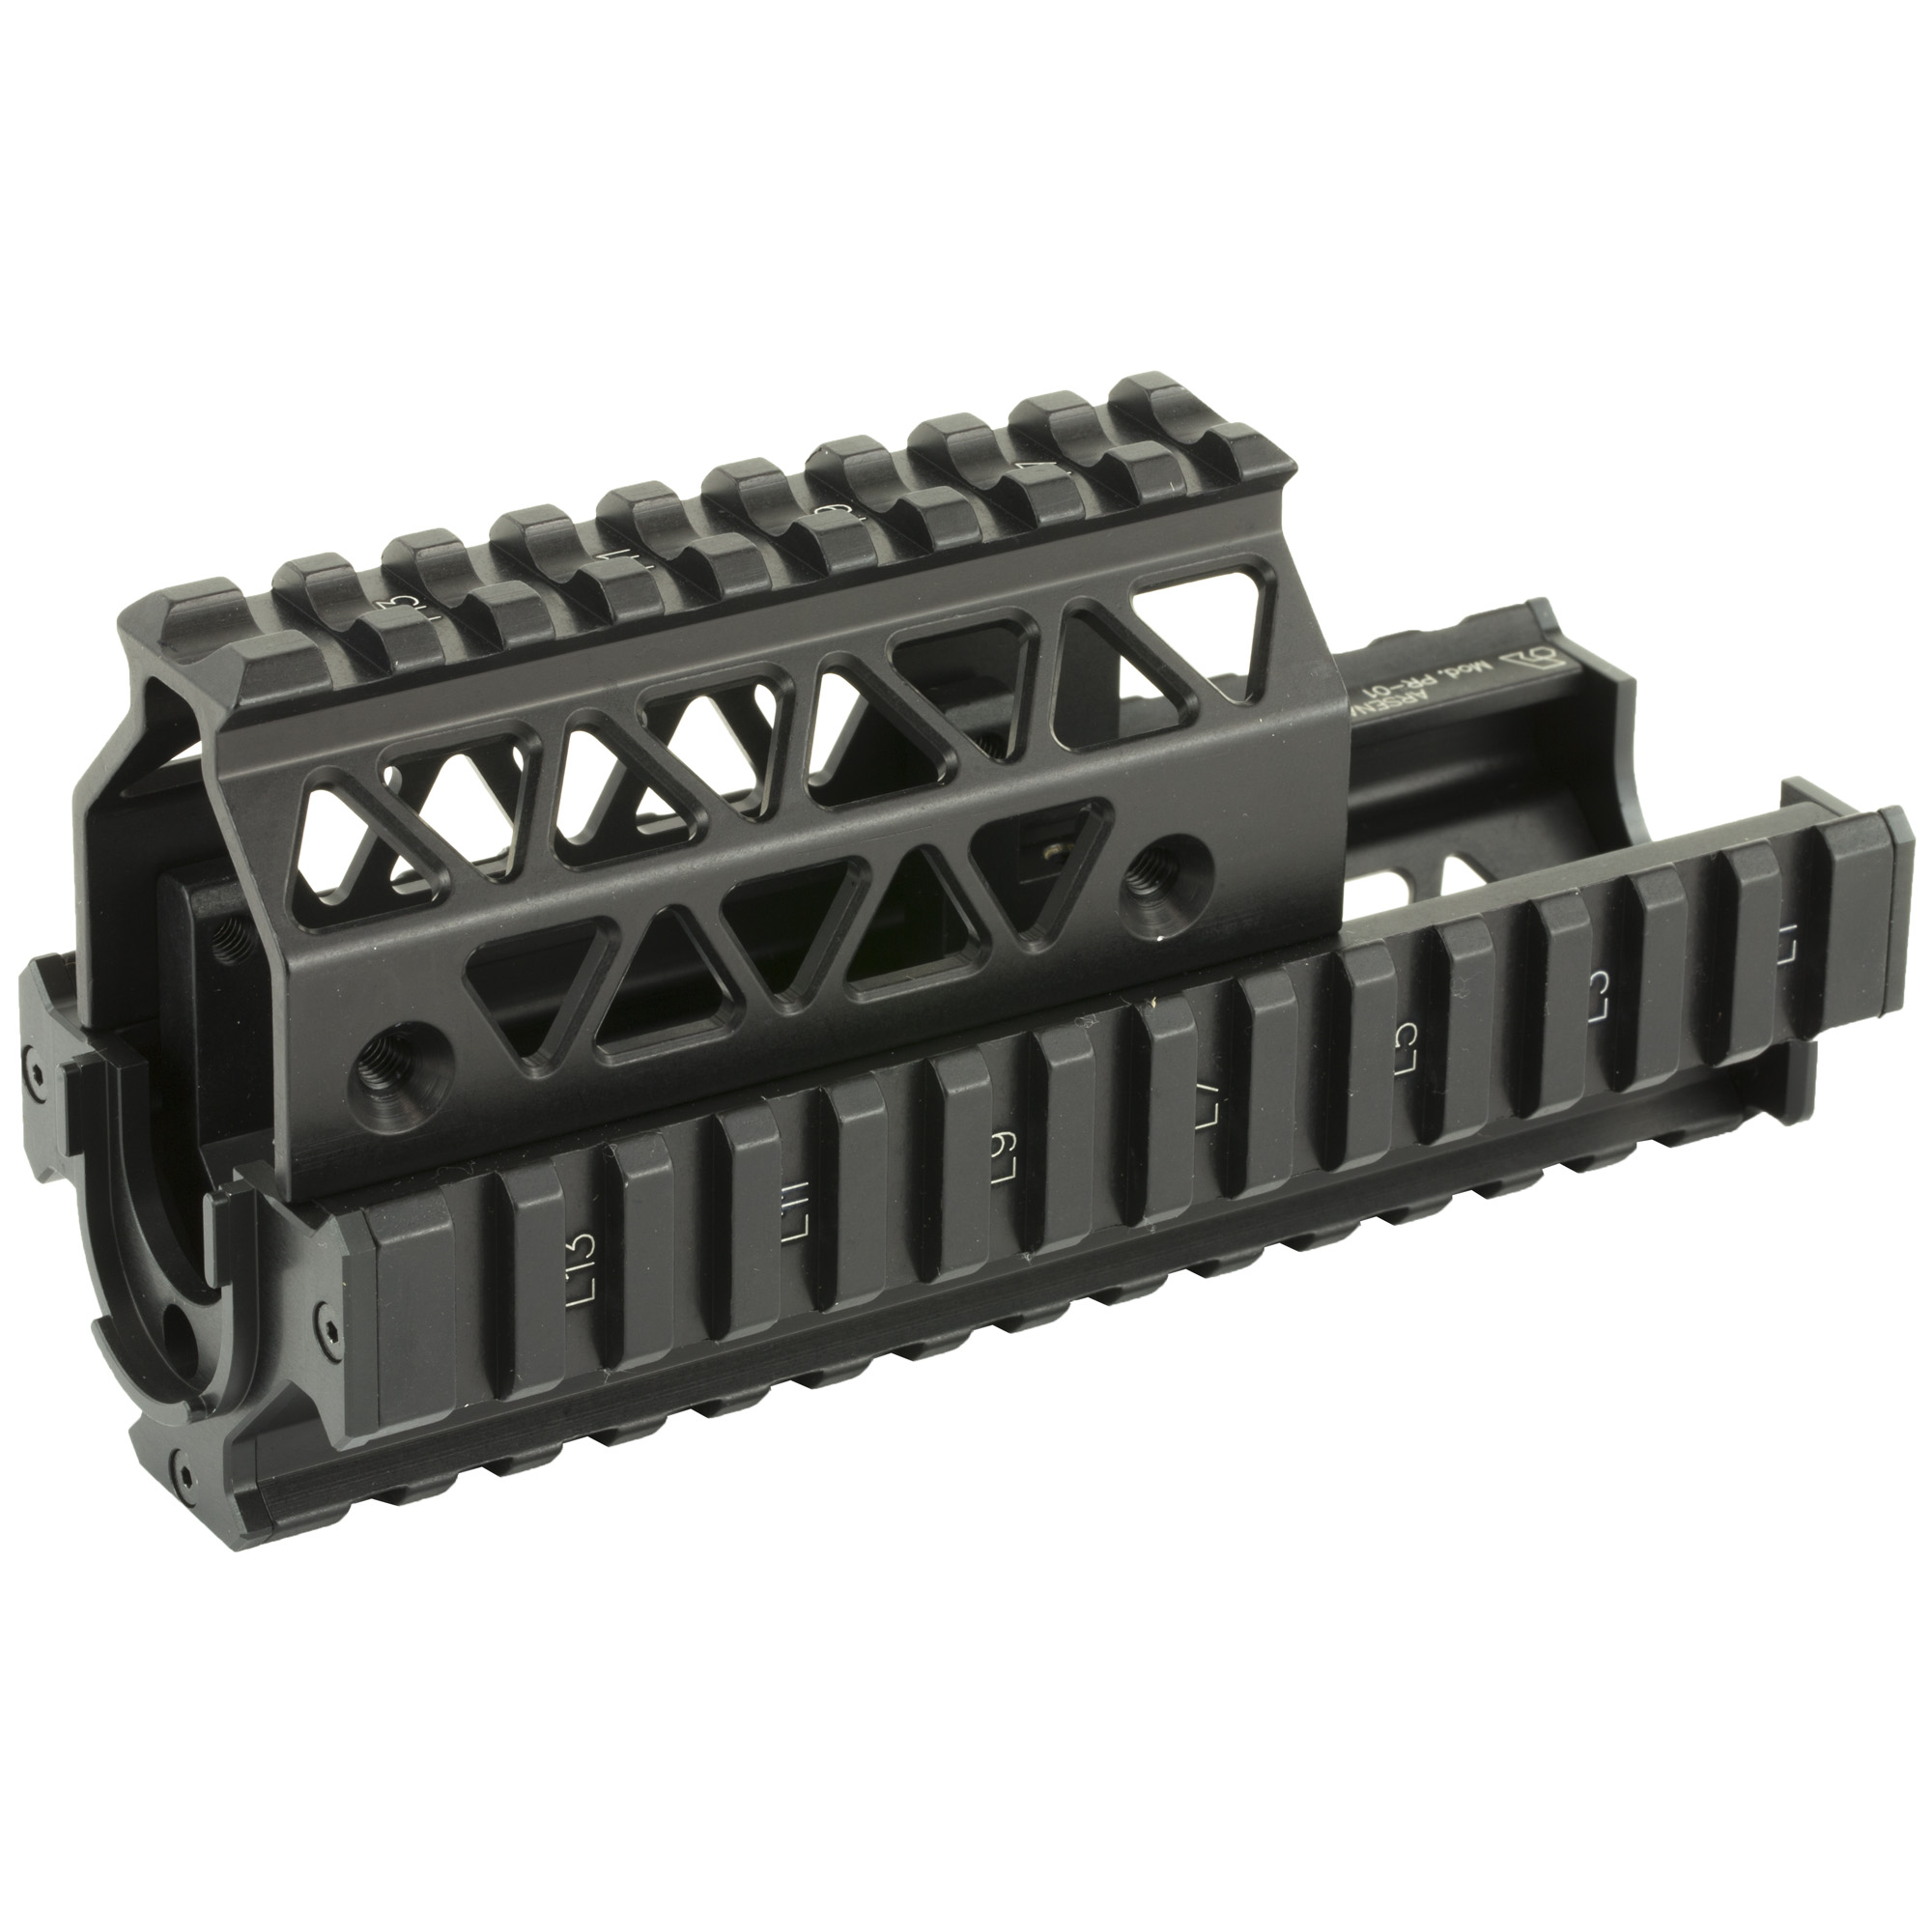 """Arsenal Inc.'s Precision Picatinny Quad Rail Handguard System provides a superior platform for wide range of attachments"""" including optics"""" flash lights"""" lasers"""" forward grips"""" and other accessory options. It was designed and manufactured to meet and exceed stringent military requirements such as the ability to accept cleaning rod with the rail system installed"""" to easily align the rail system with both milled and stamped receivers achieved and provides the maximum number of rails achieved with optimum design with 14 rails on the bottom and the sides"""" and 9 rails on the top."""